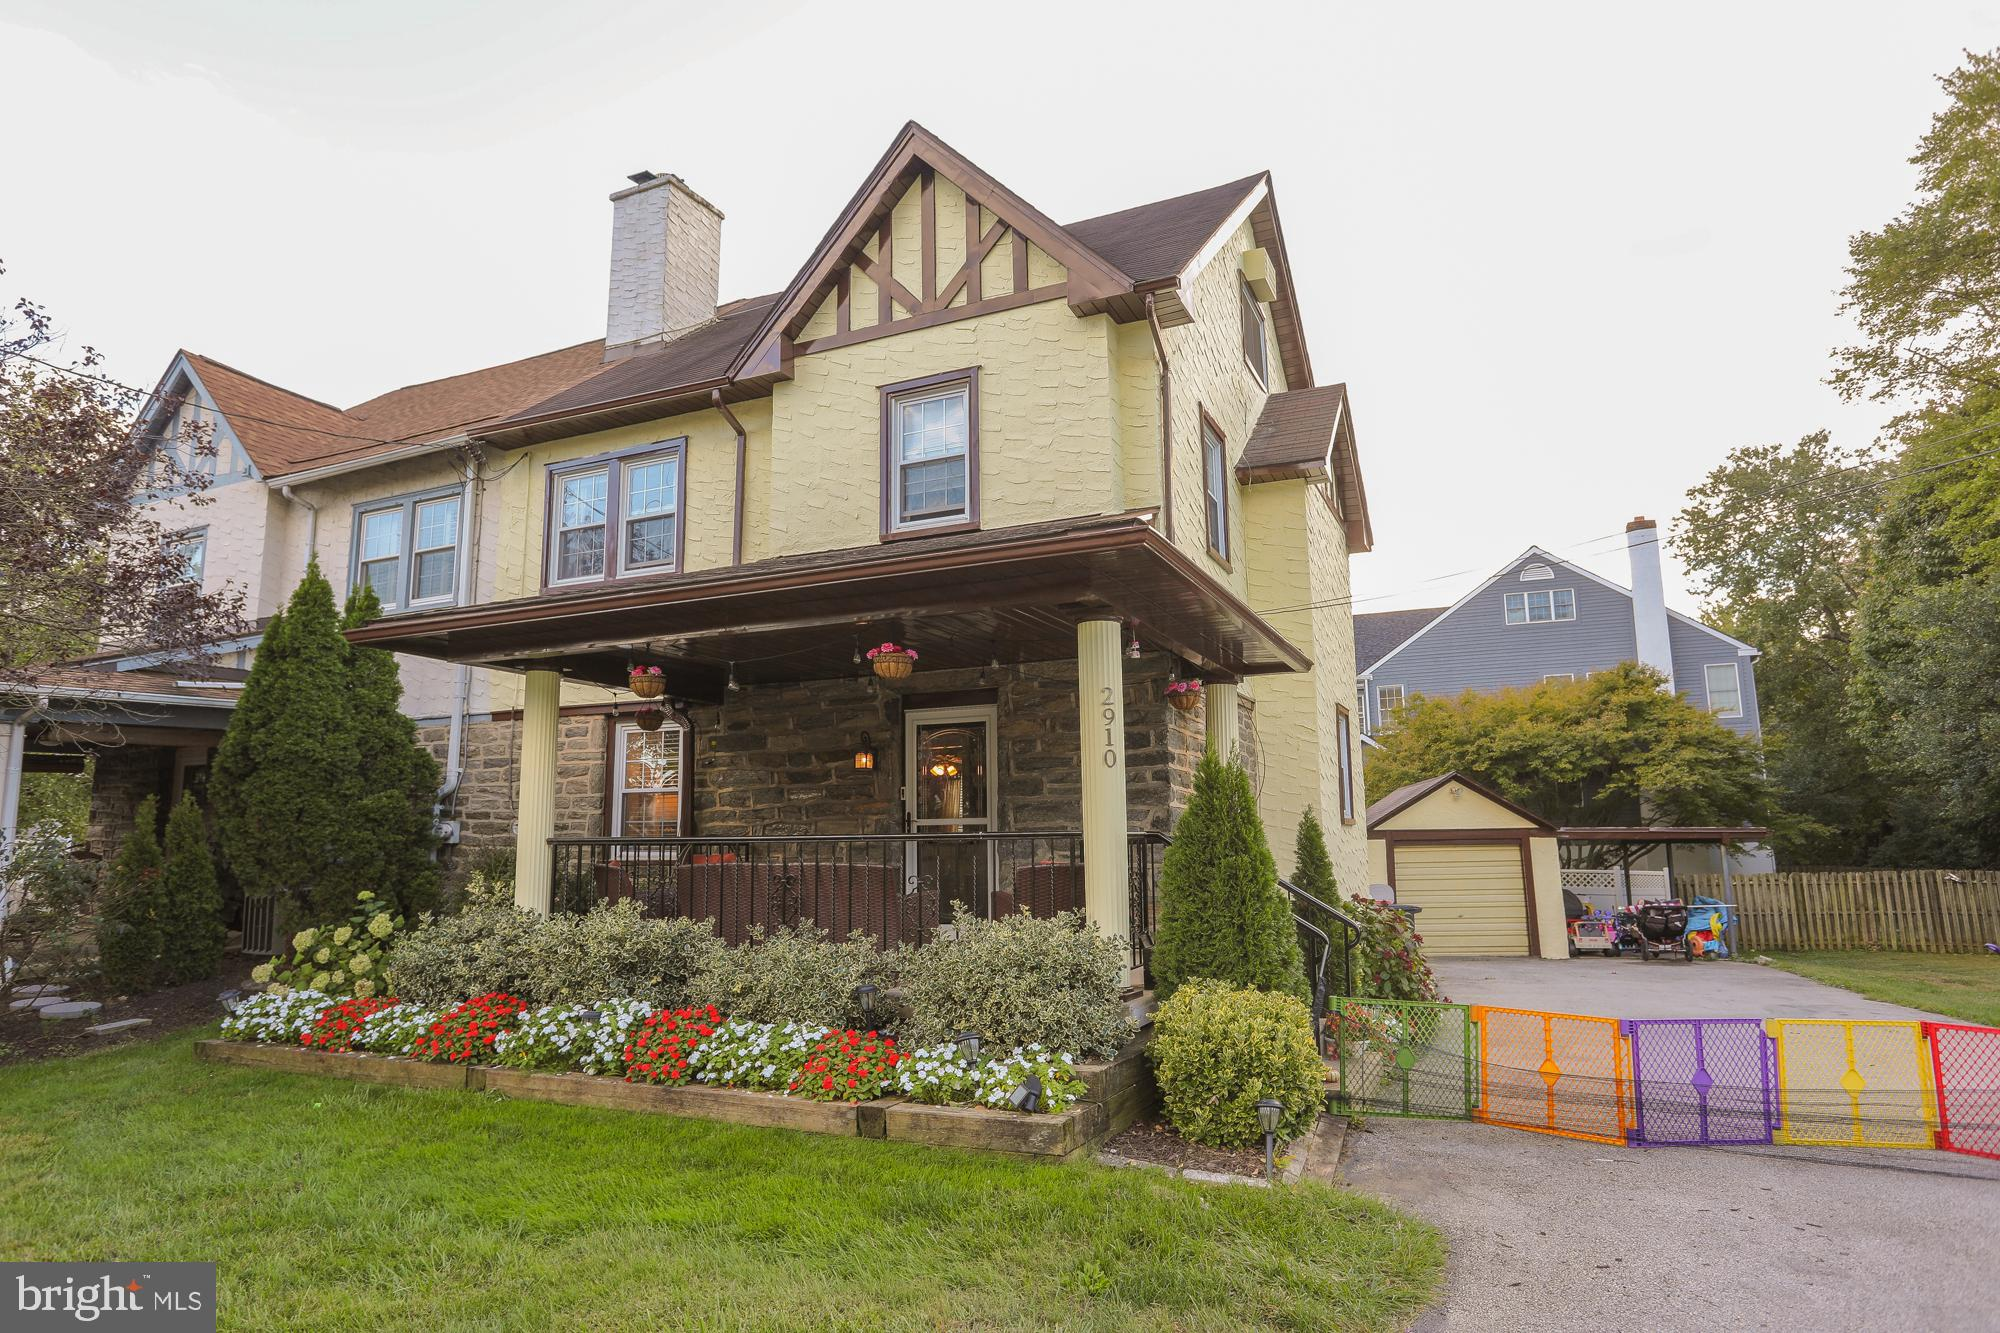 2910 Haverford Road, Ardmore, PA 19003